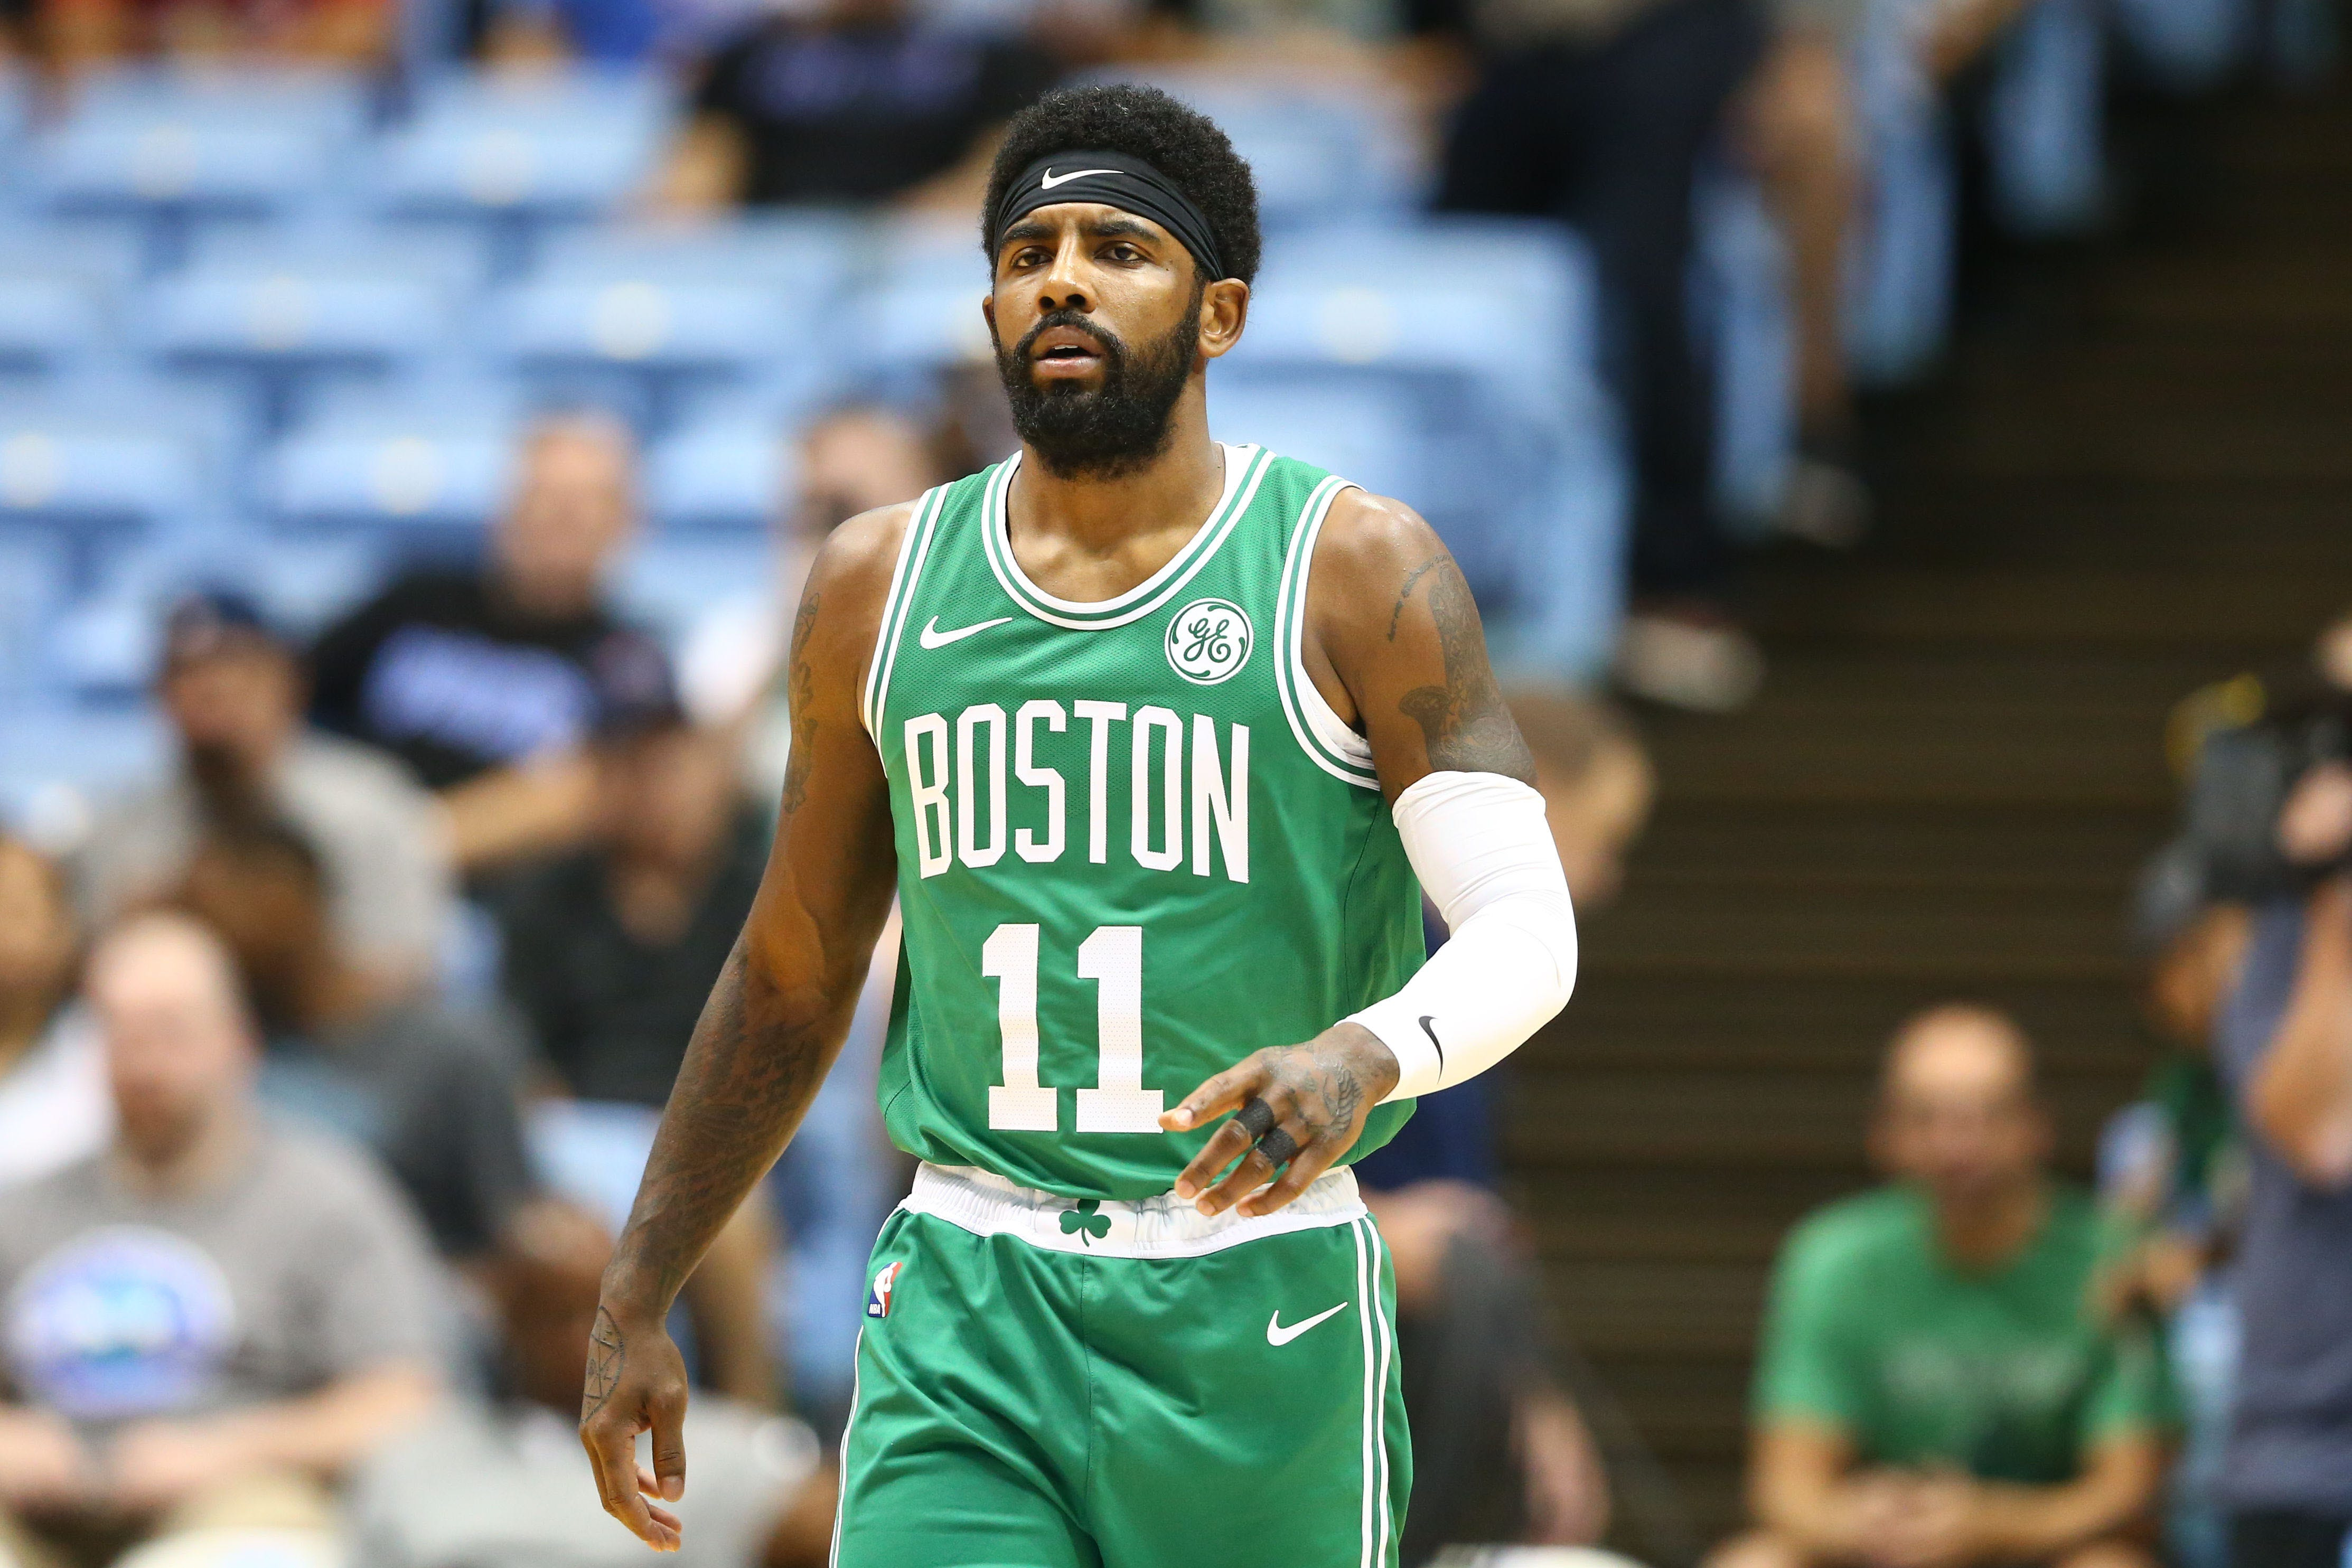 Boston Celtics guard Kyrie Irving walks down the court in the first half against the Charlotte Hornets at Dean E. Smith Center.